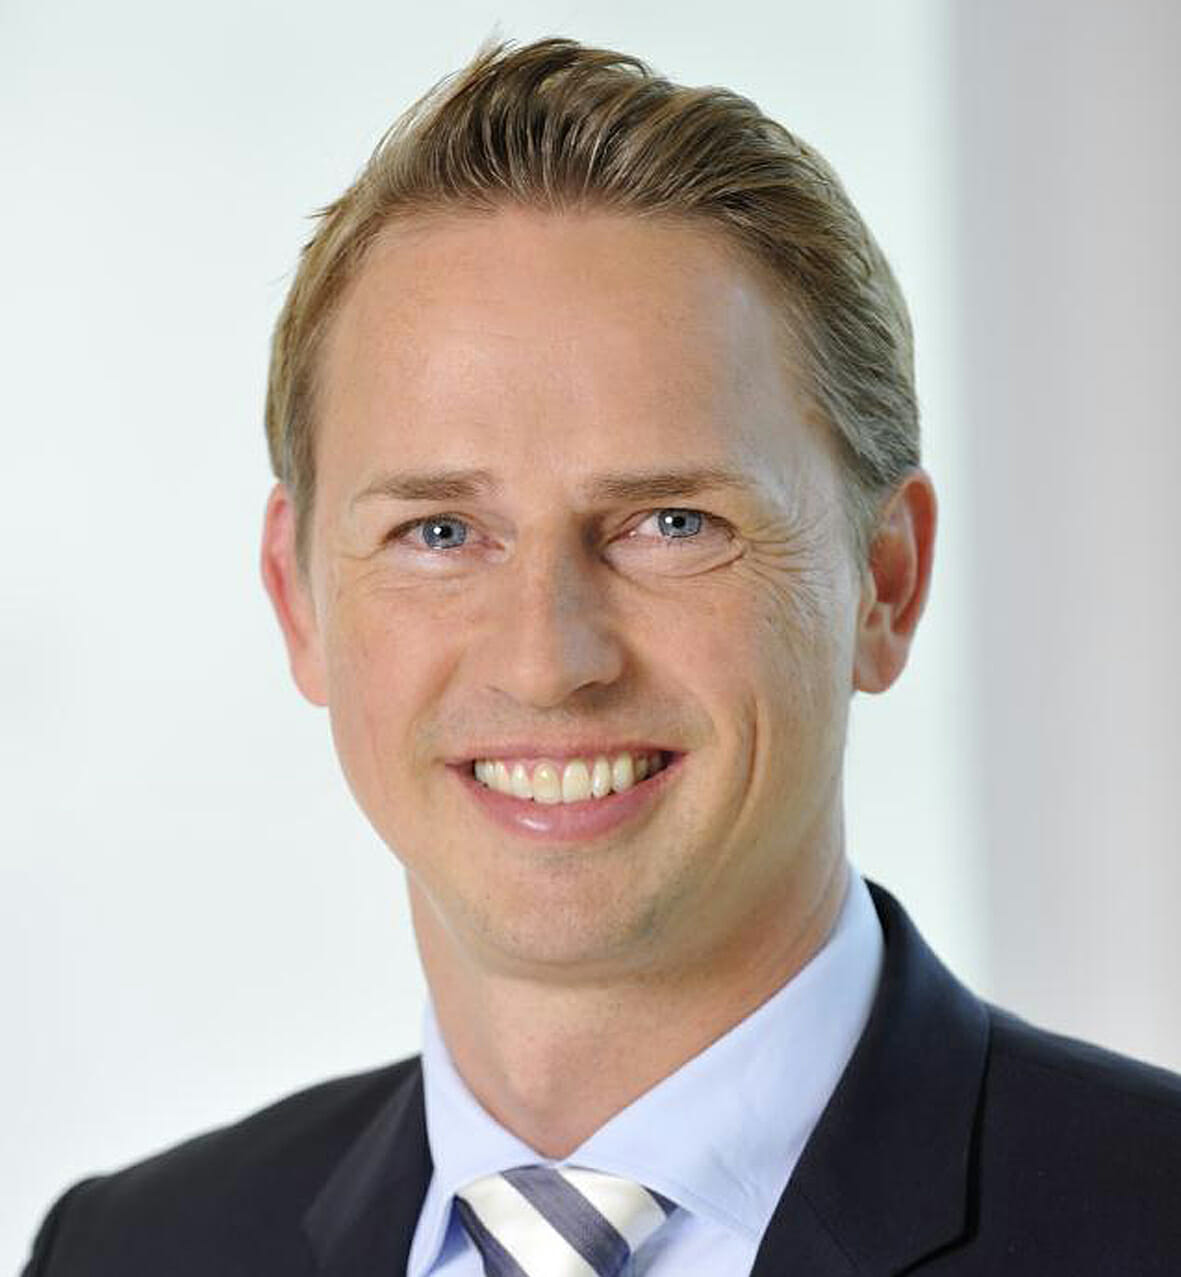 Sven Mulder, Country VP, Regional Sales, Central, South Eastern Europe & Russia bei CA Technologies